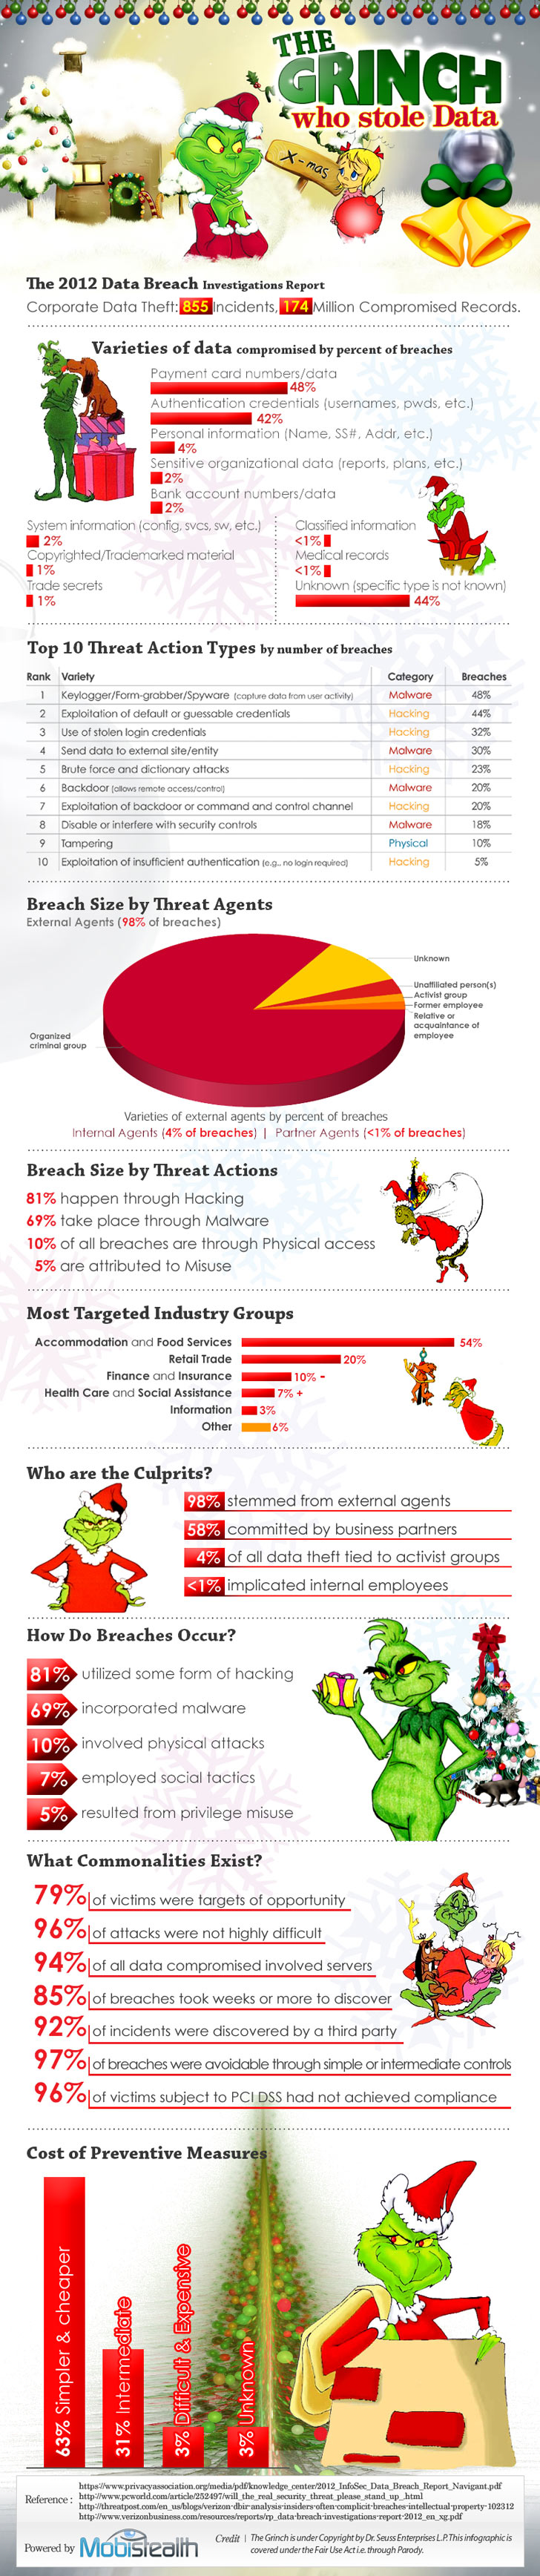 Grinch Stole Data - infographic